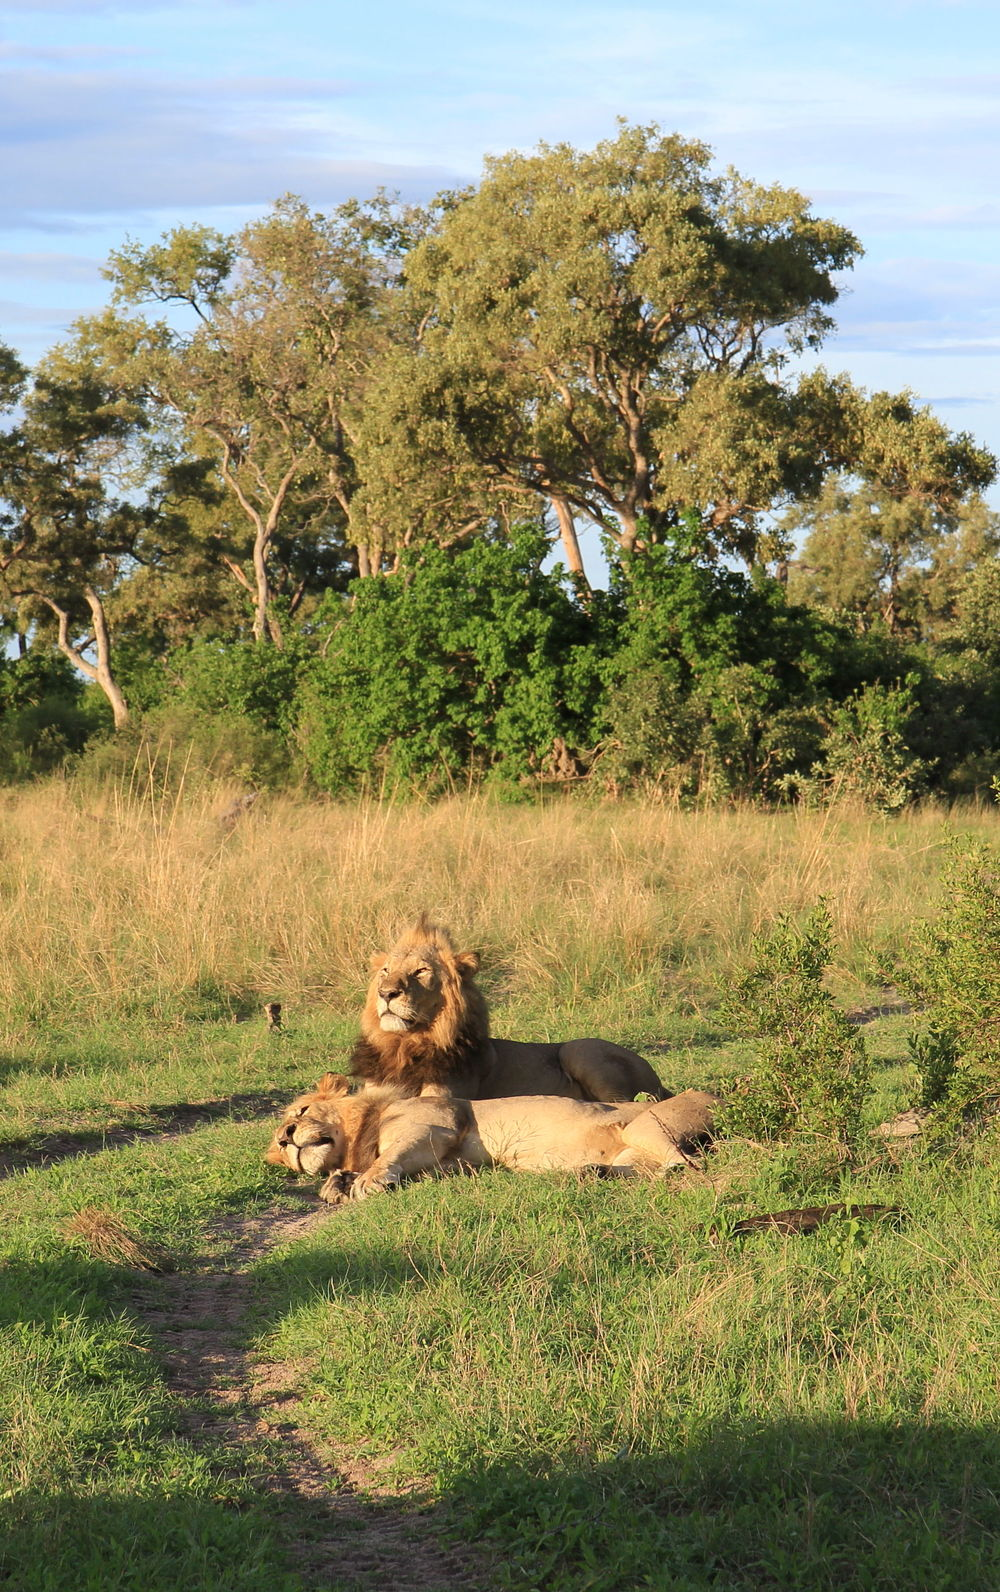 Lions from the adjacent wildlife concession.